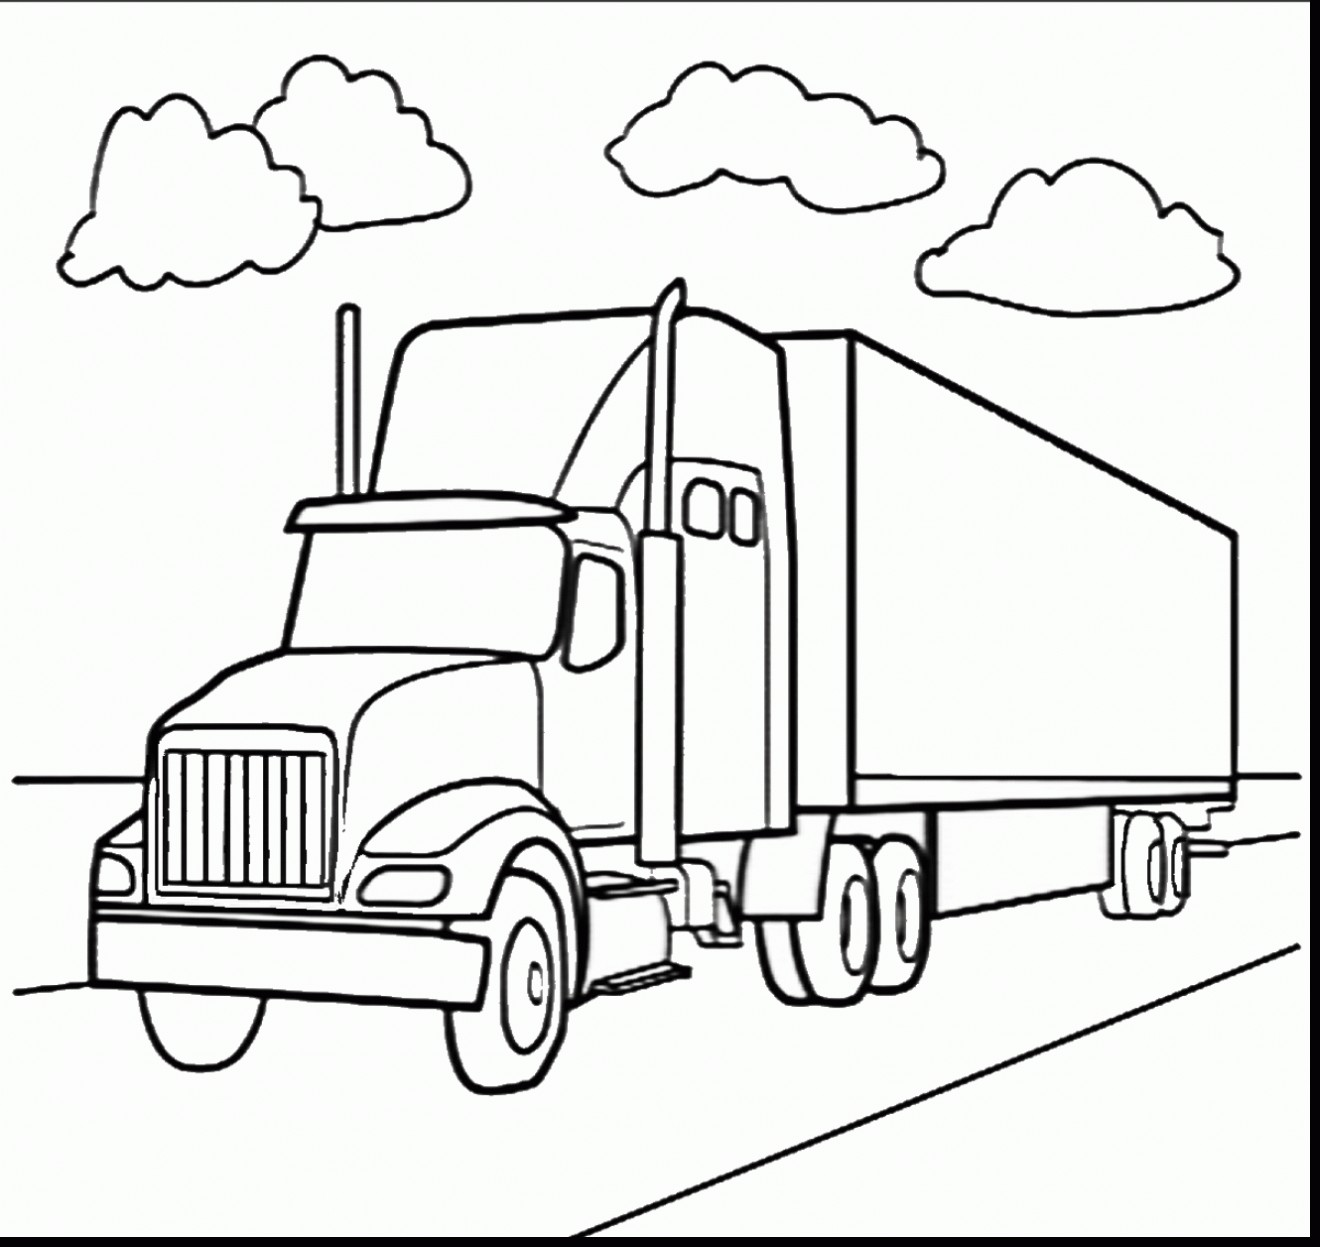 1320x1247 Coloring Pages Horse Trailer Fresh Diesel Truck Coloring Pages